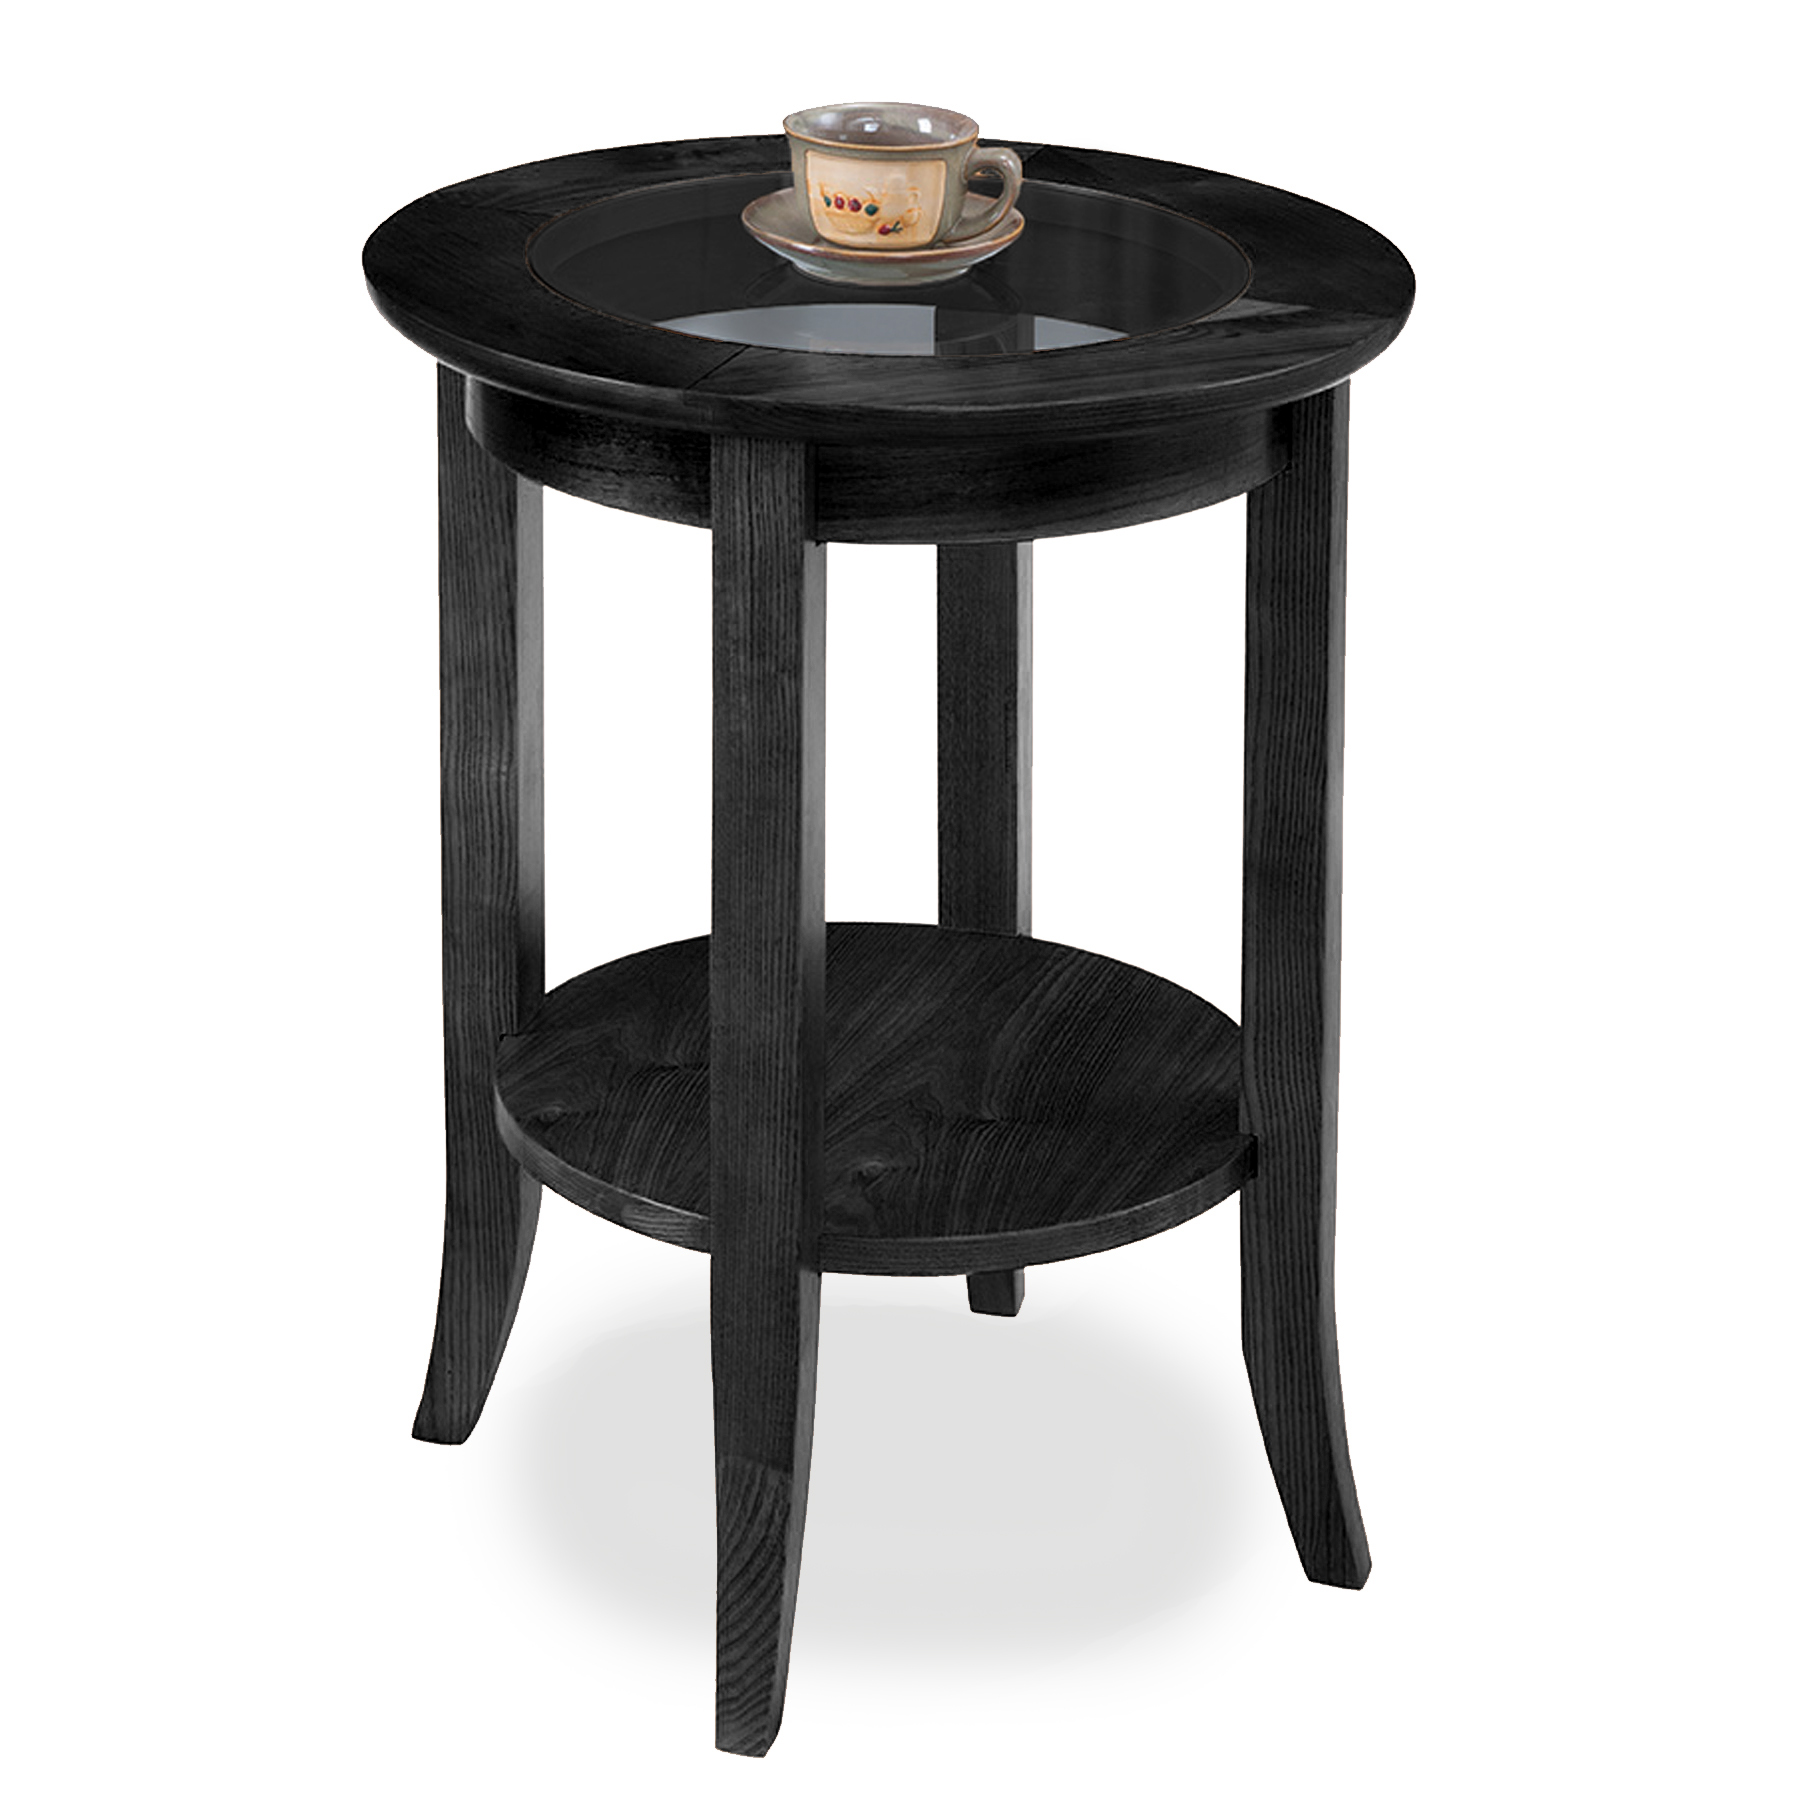 leick slate glass top round side table prod accent marble lamp console behind sofa knobs red lamps for bedroom chairs with metal outdoor bayside furniture cooler drinks next